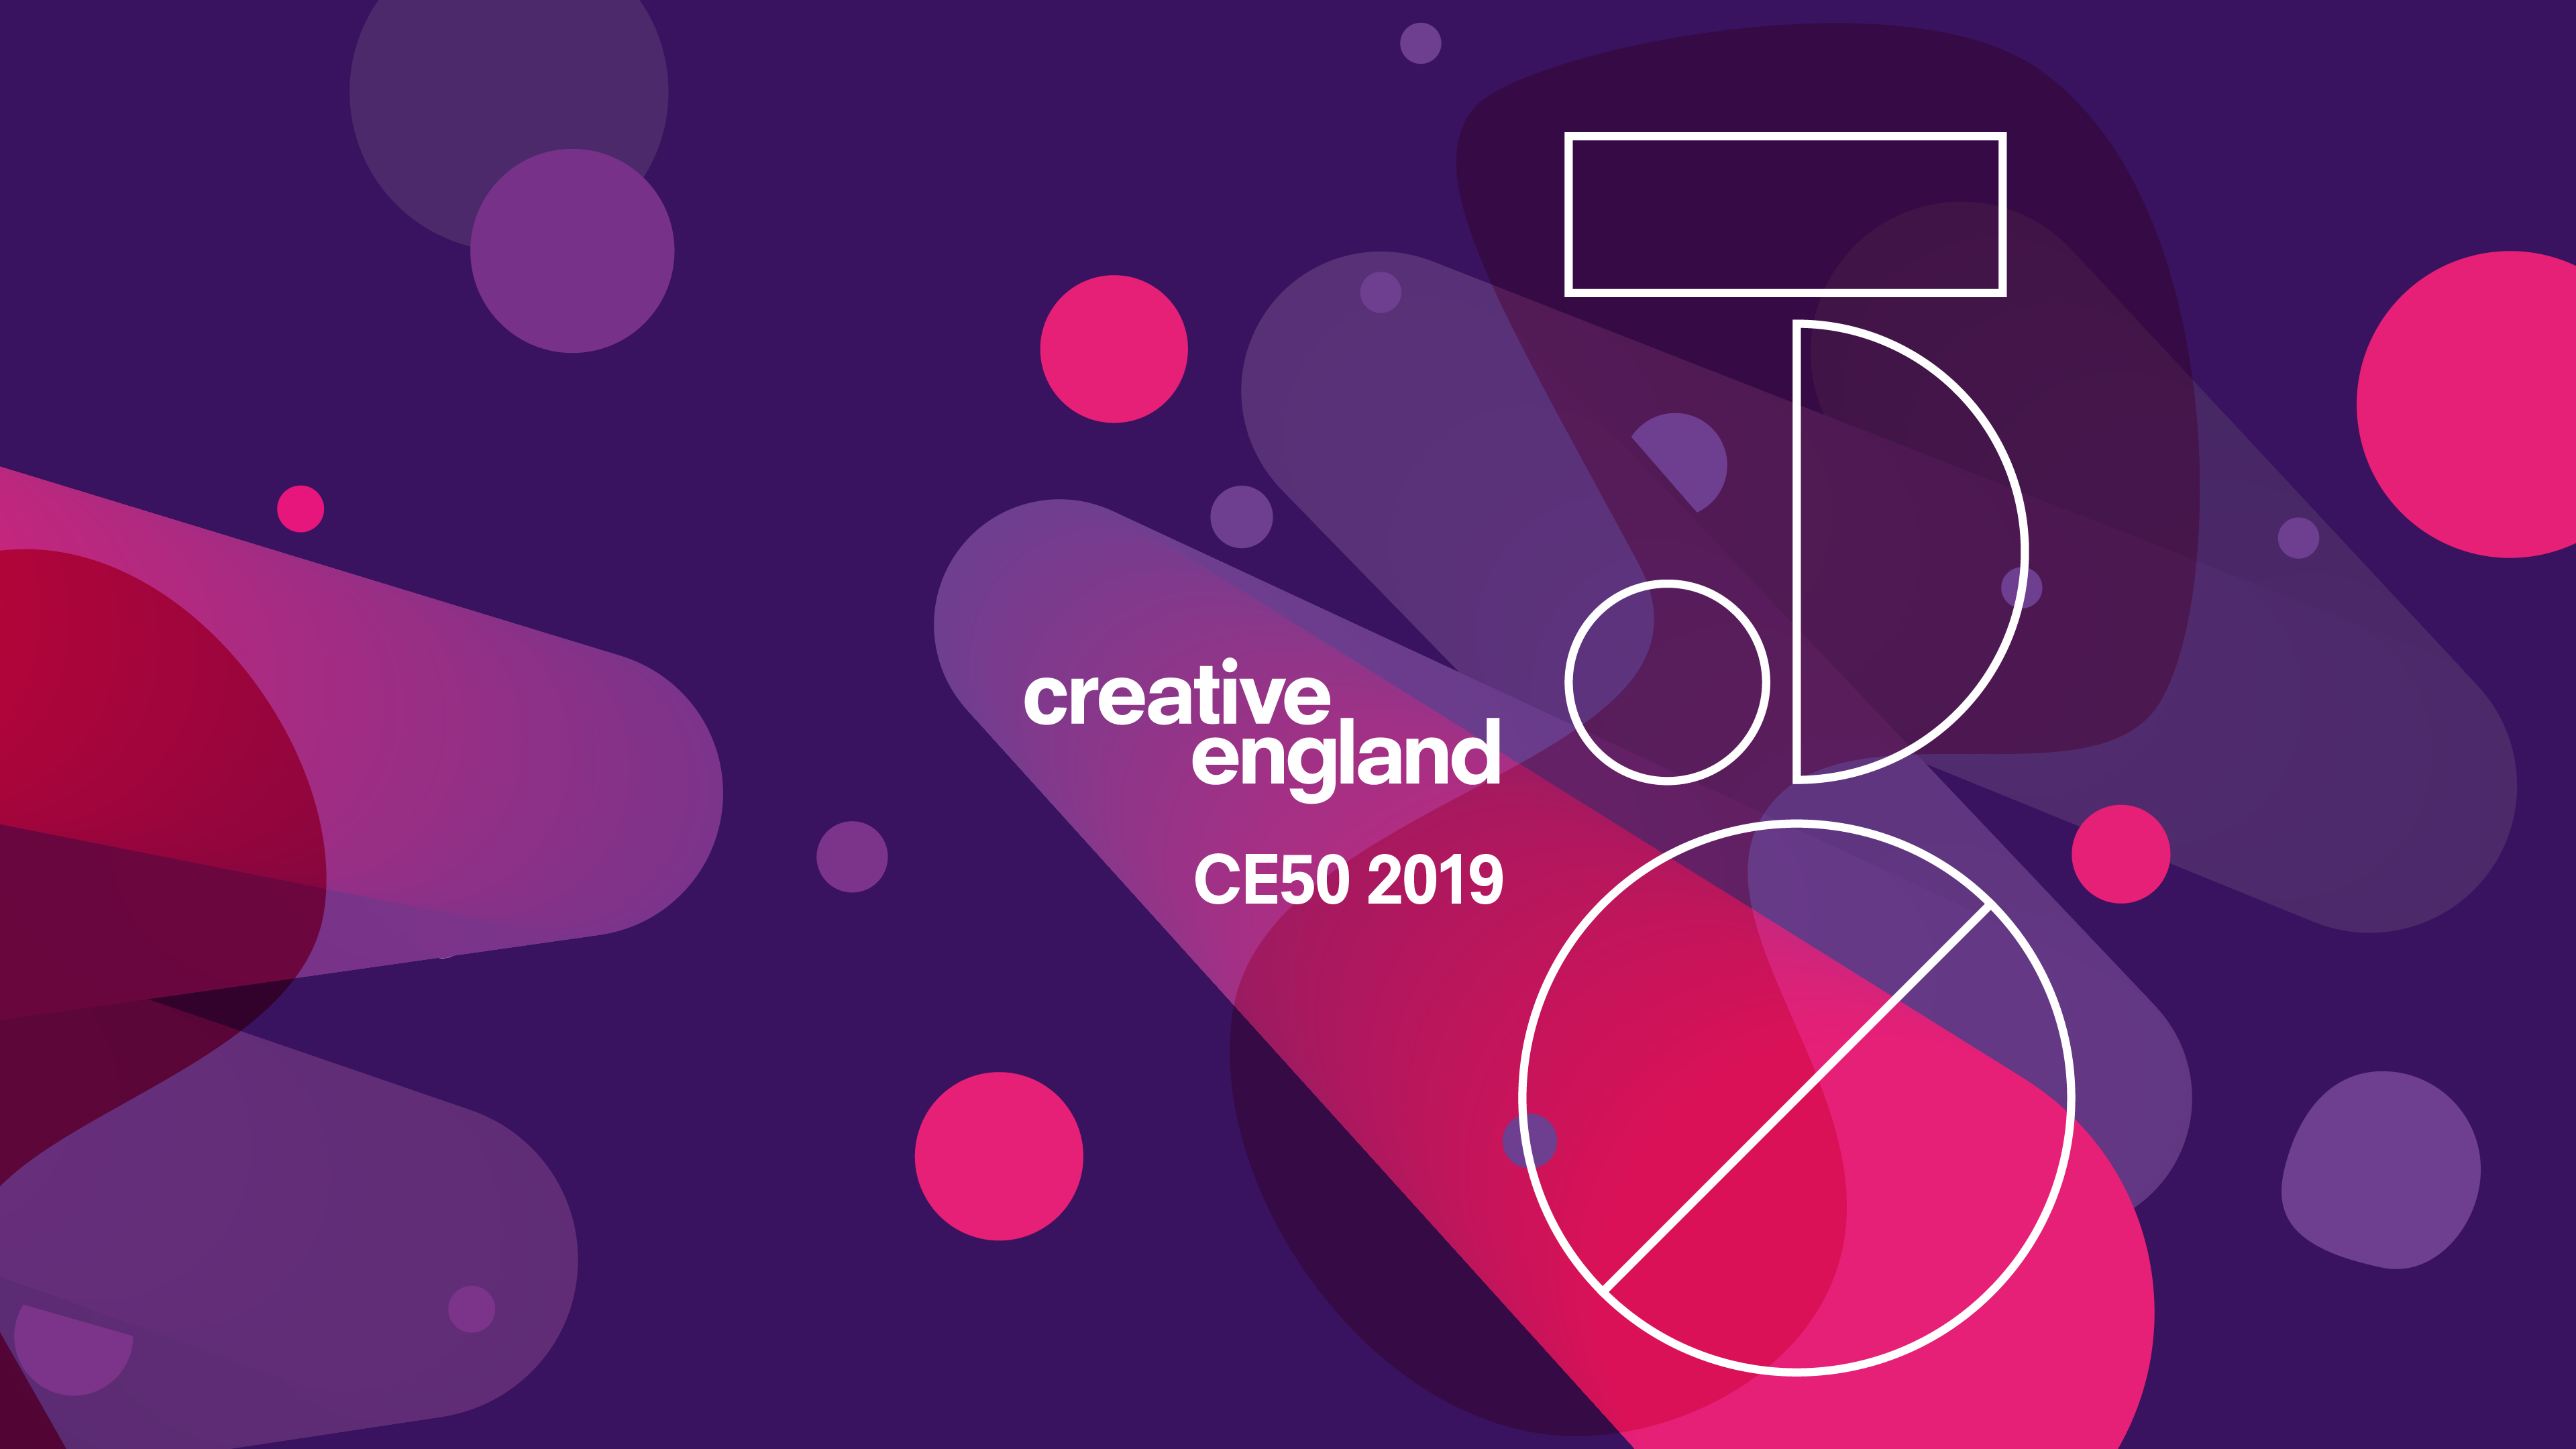 Wise Owl Named in Creative England's 2019 CE50 - WISE OWL FILMS